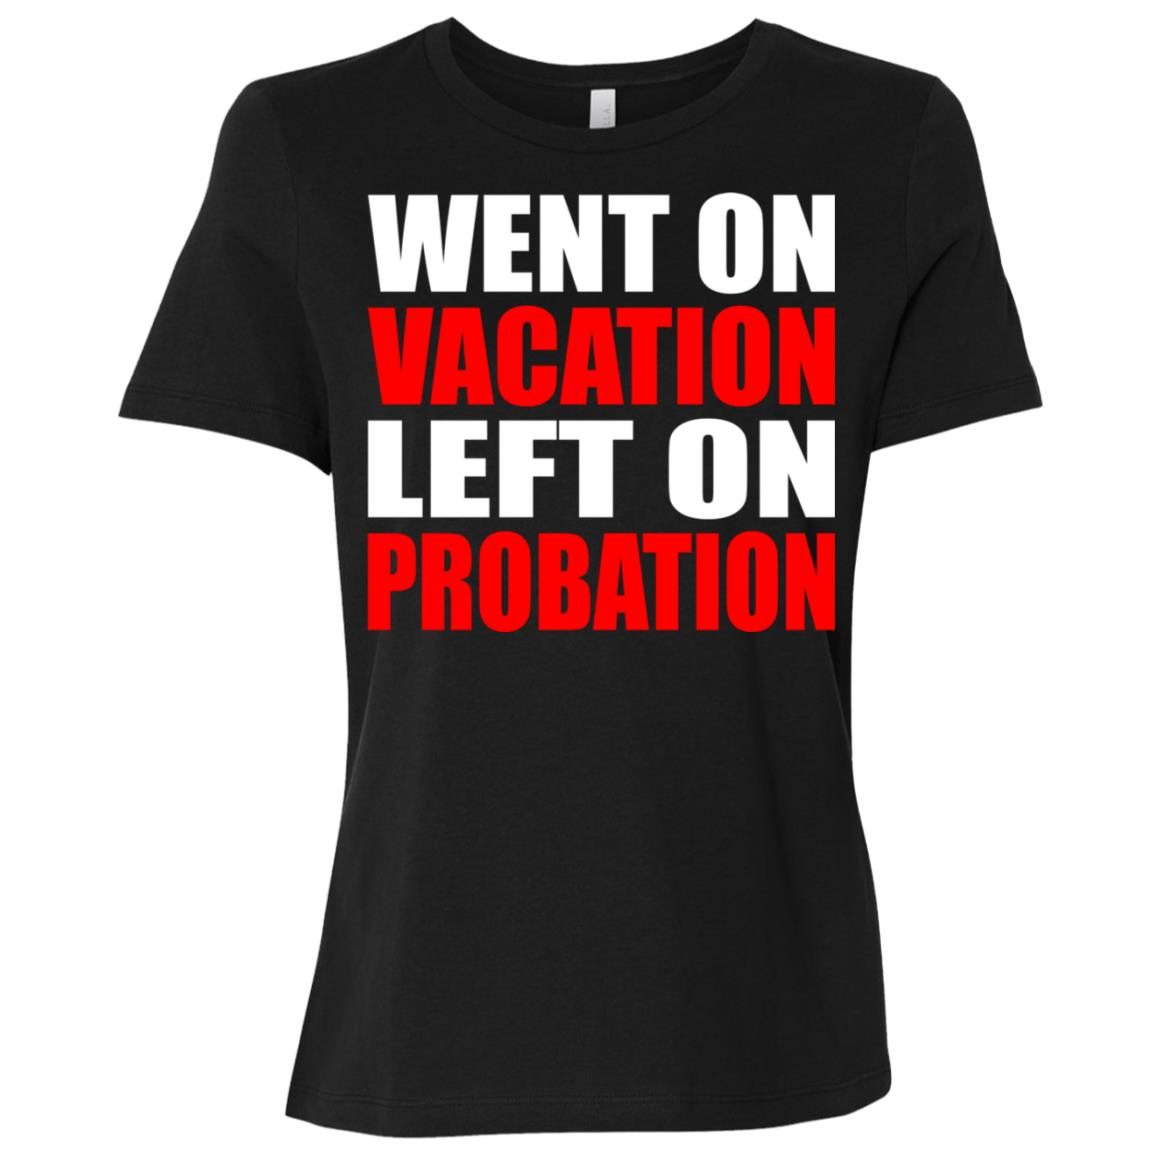 Went On Vacation Left On Probation – Funny Travel Humor Joke Women Short Sleeve T-Shirt